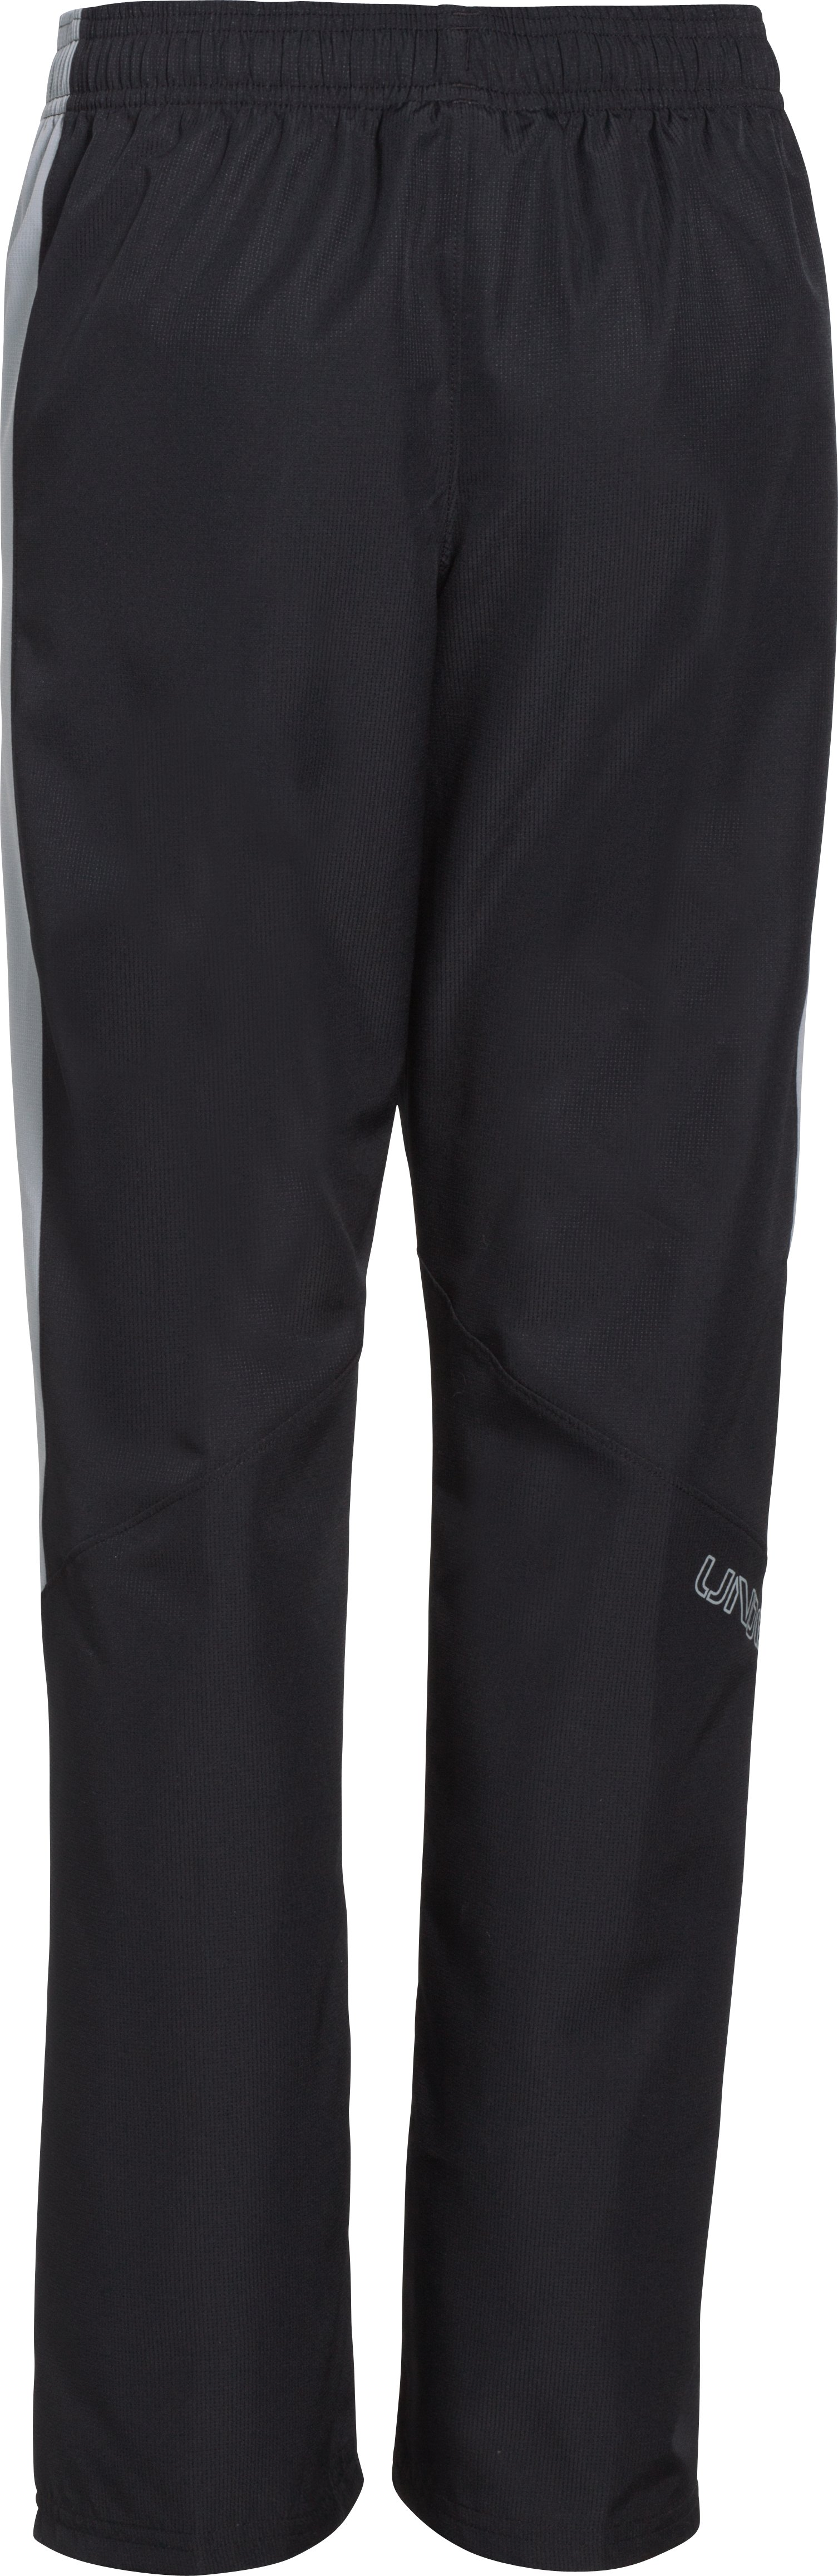 Main Enforcer Woven Pants, Black